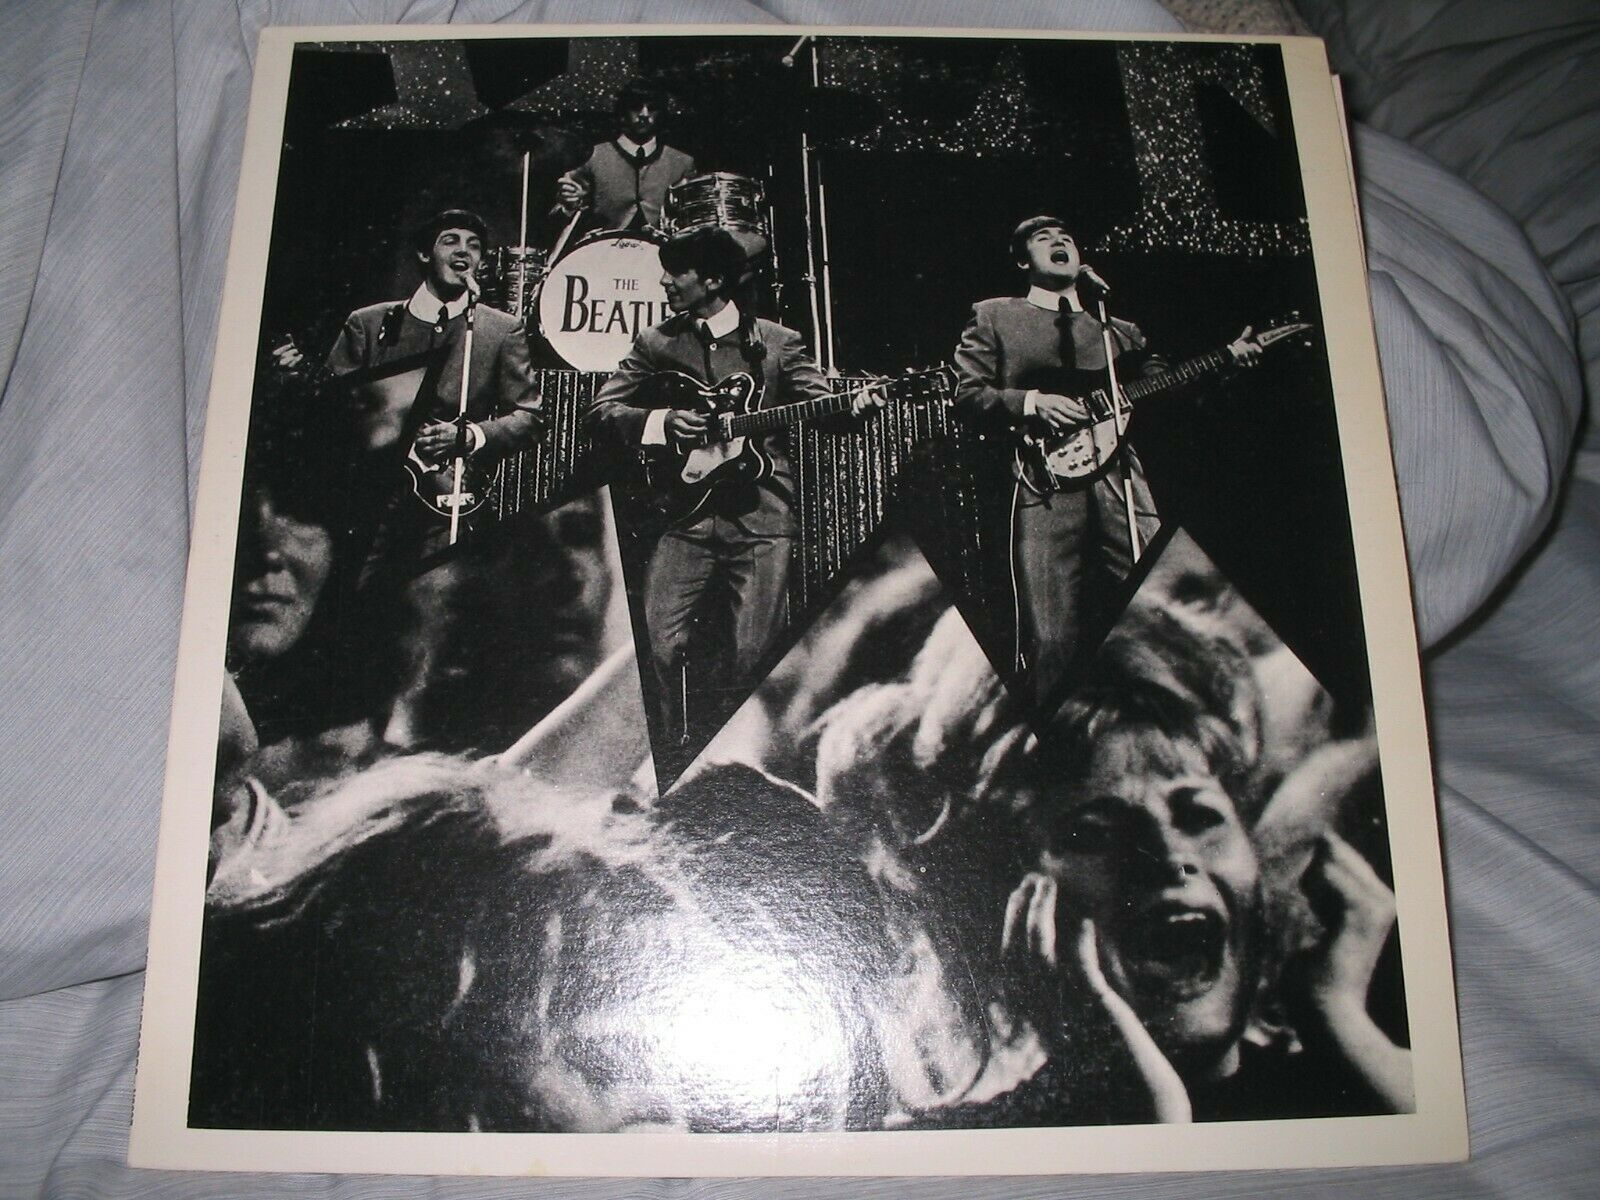 """THE BEATLES """"Back In 1964 At The Hollywood Bowl"""" Live Vinyl LP Mint Never Played"""